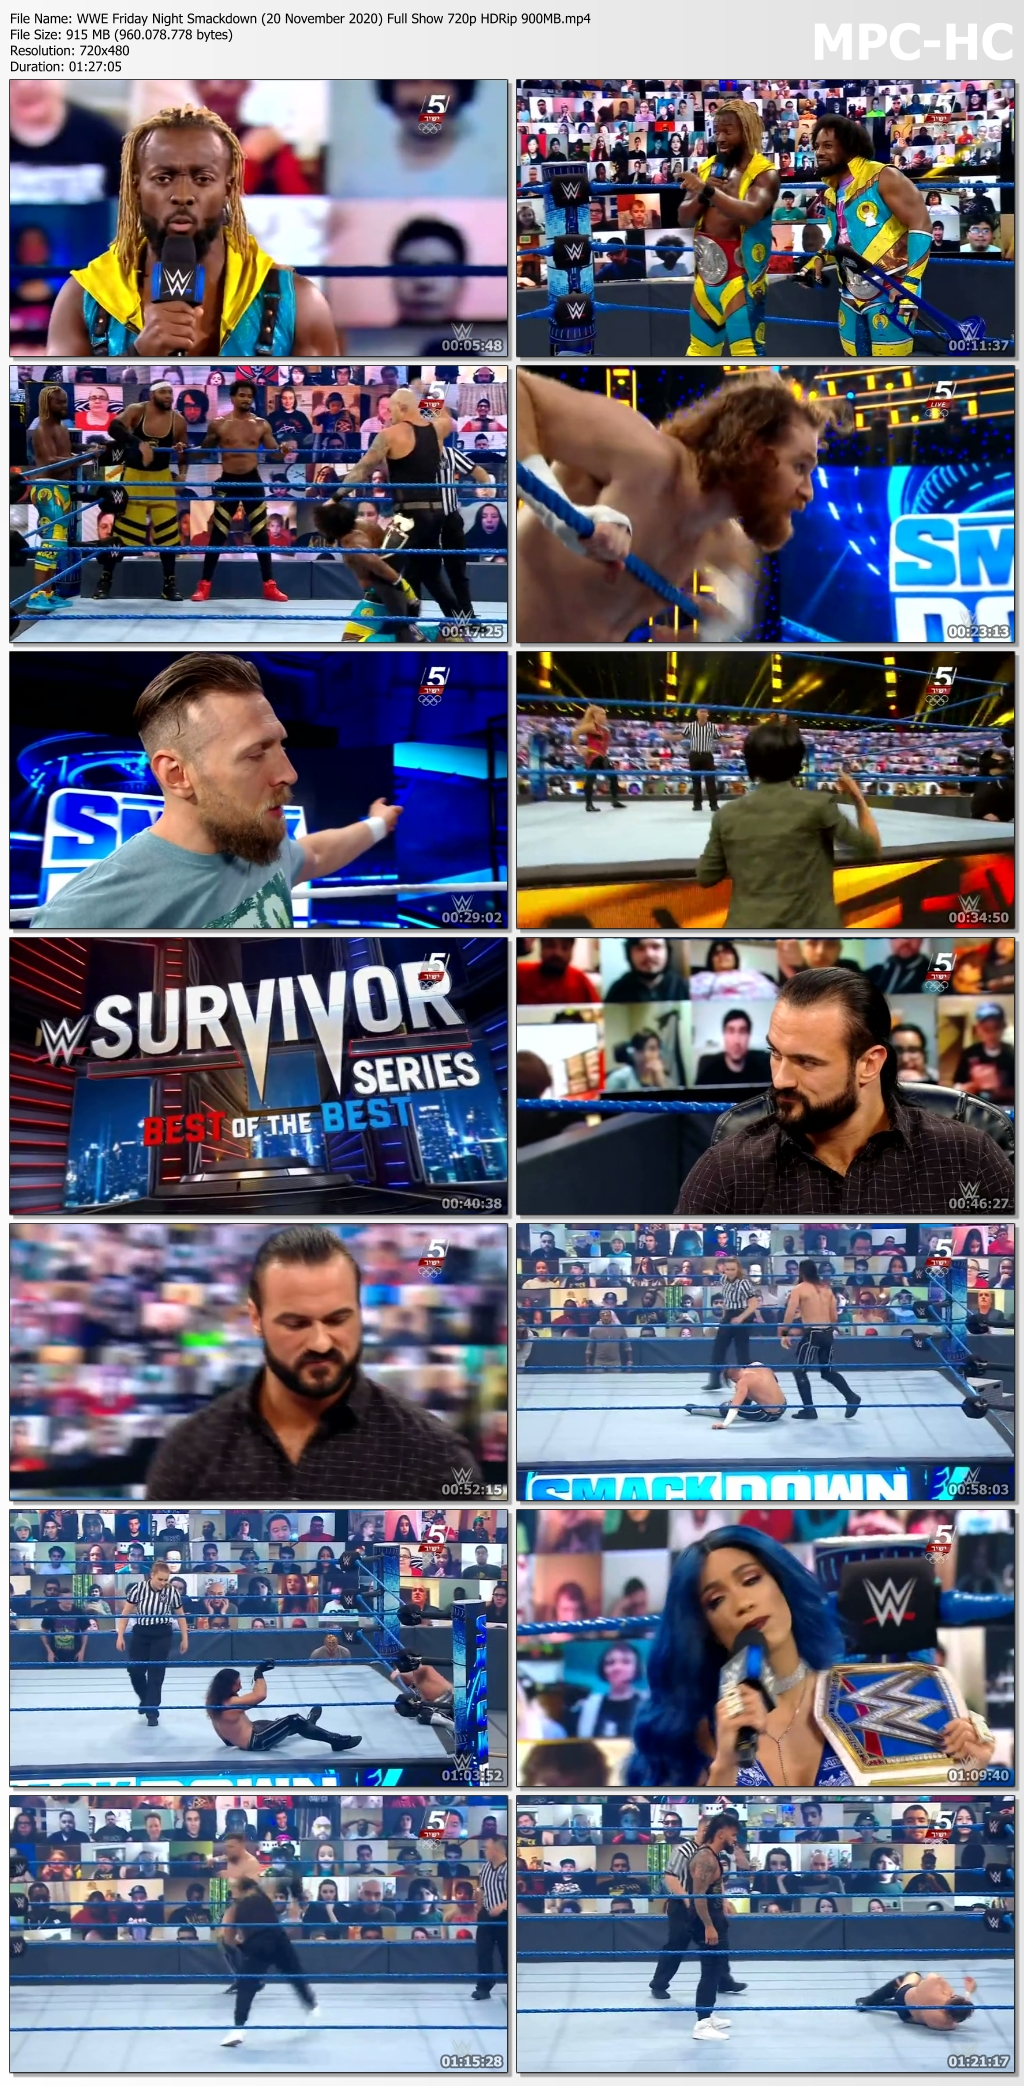 WWE-Friday-Night-Smackdown-20-November-2020-Full-Show-720p-HDRip-900-MB-mp4-thumbs